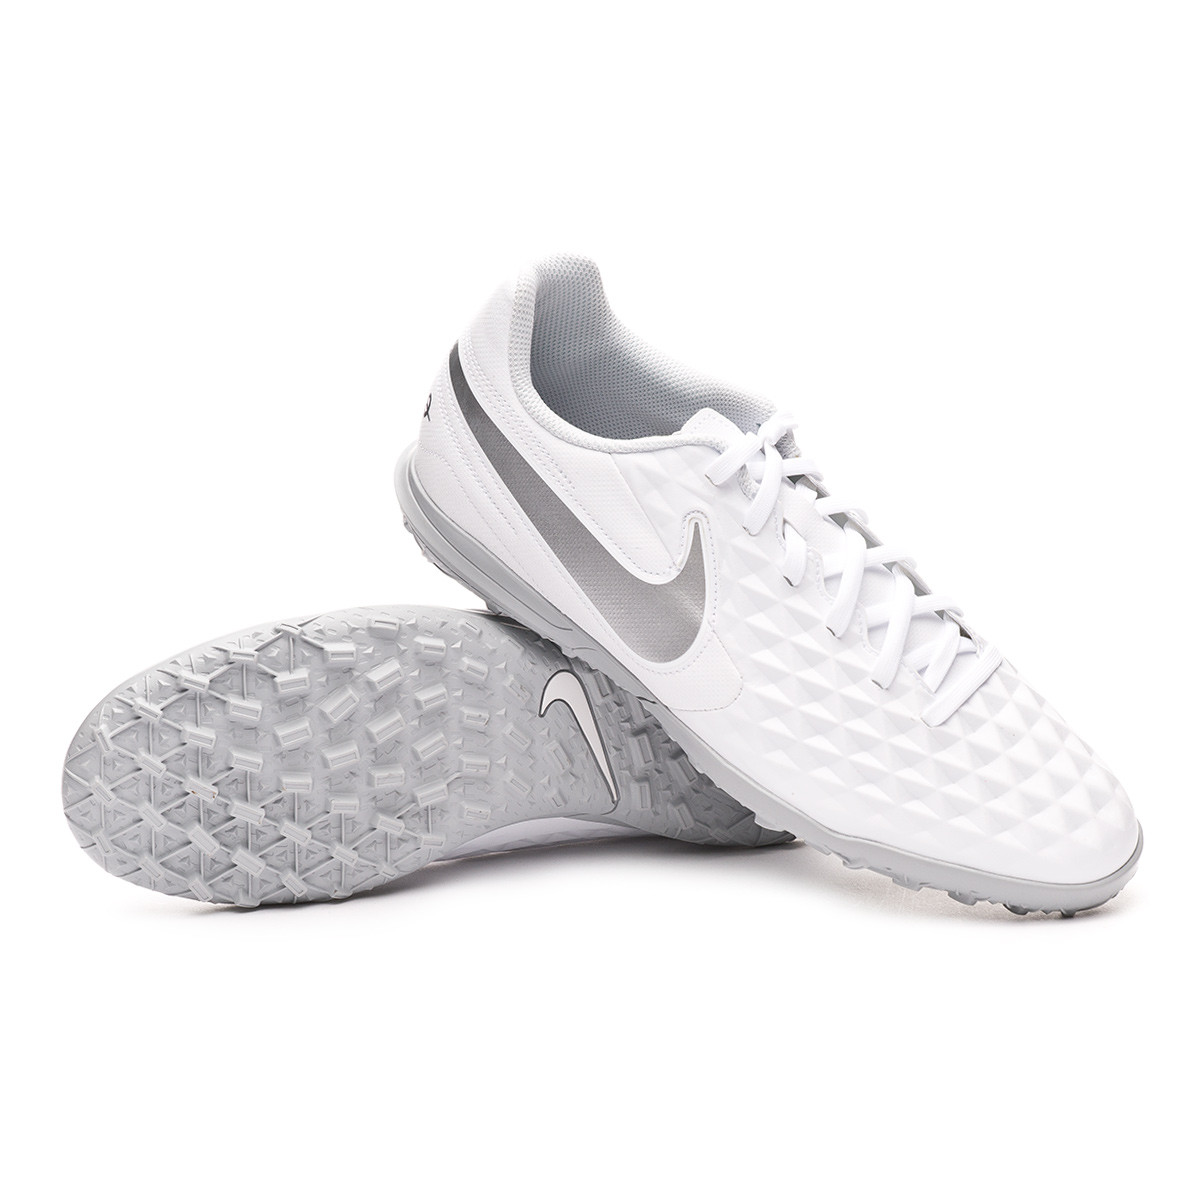 Limo Alojamiento idiota  Football Boots Nike Tiempo Legend VIII Club Turf White-Chrome-Pure  platinum-Wolf grey - Football store Fútbol Emotion